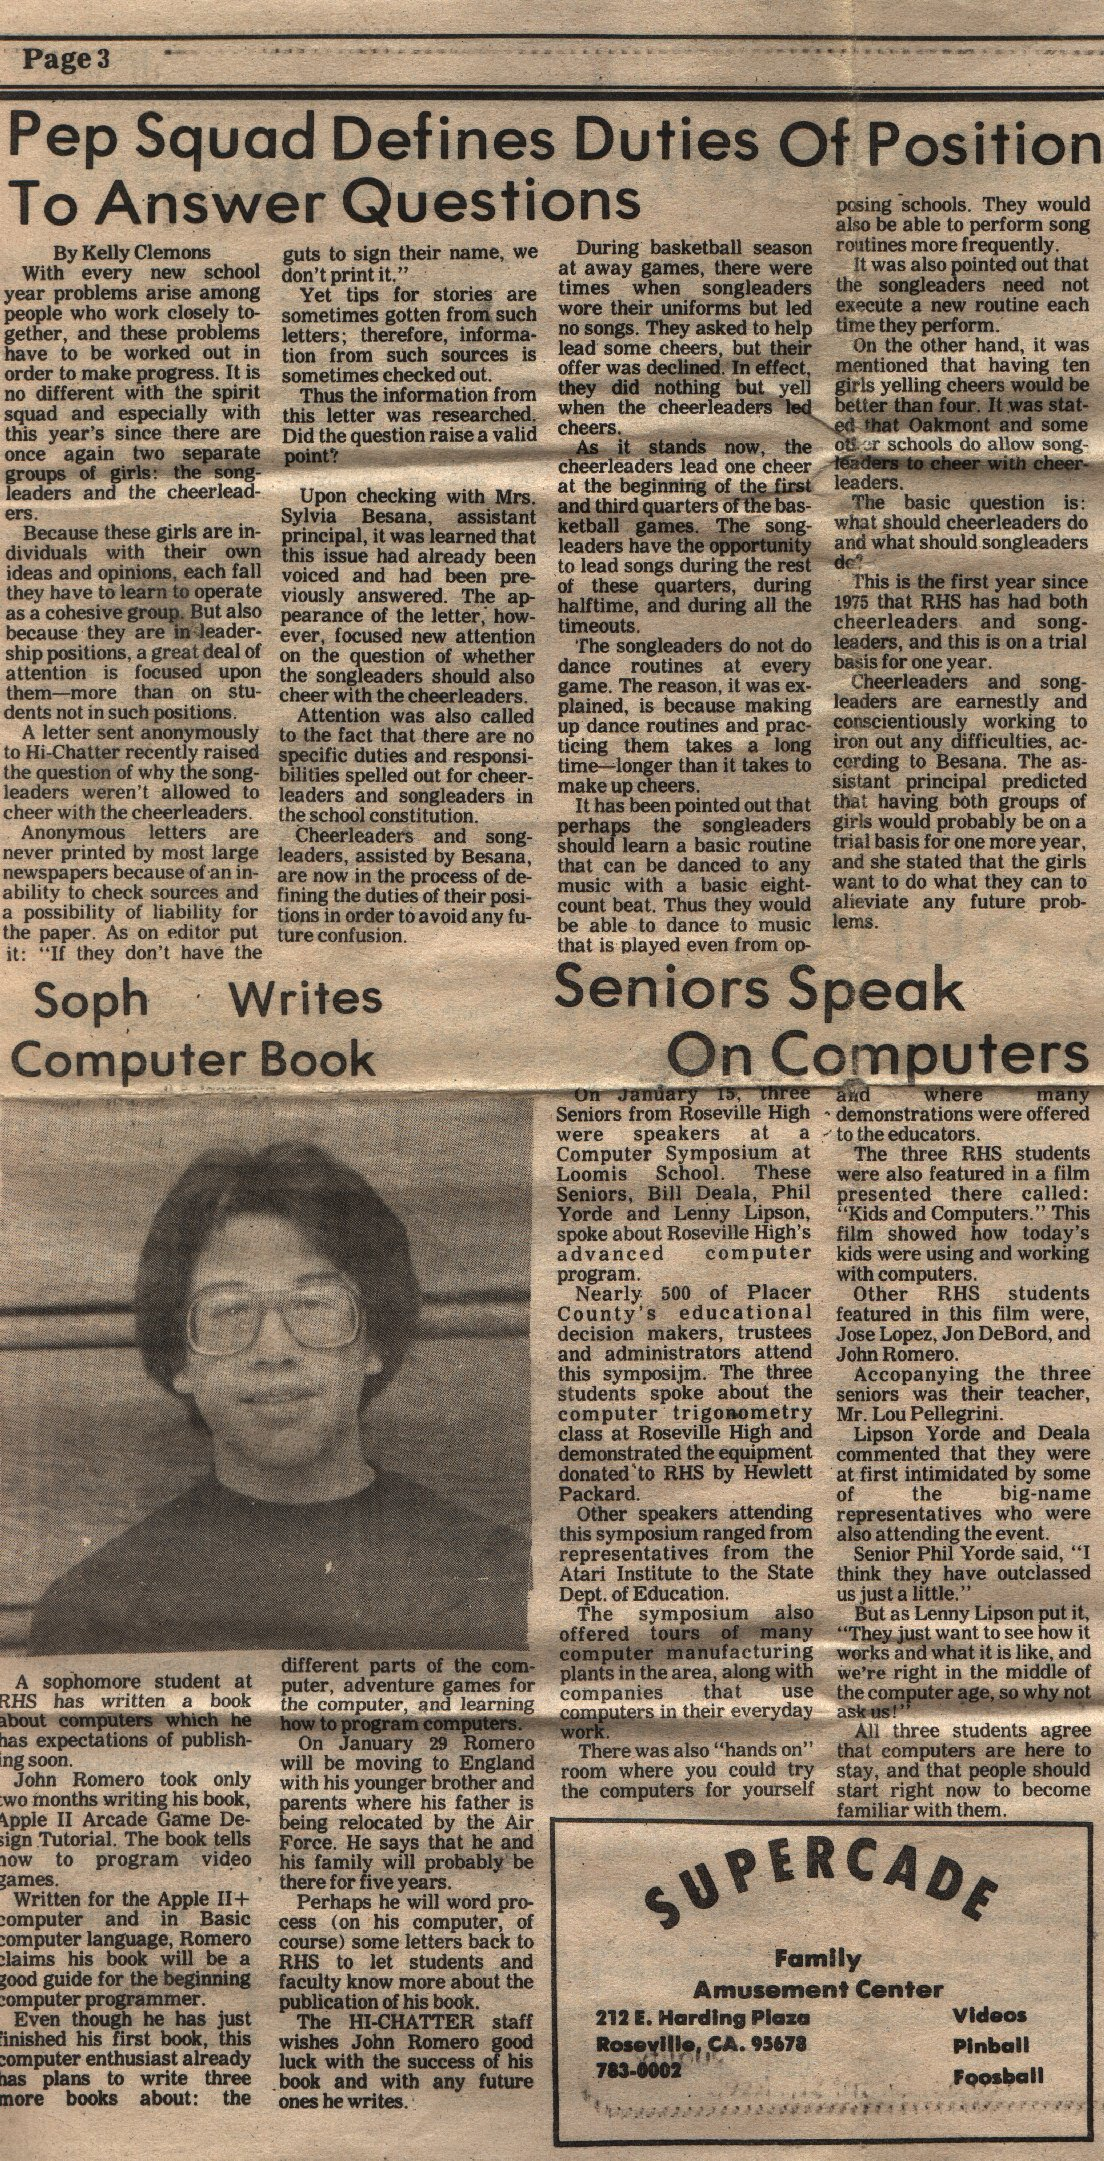 Back in 1982, just before moving to England during my sophomore year of high school (10th grade), I wrote a book about how to program Apple II arcade games and the school paper wrote about it.